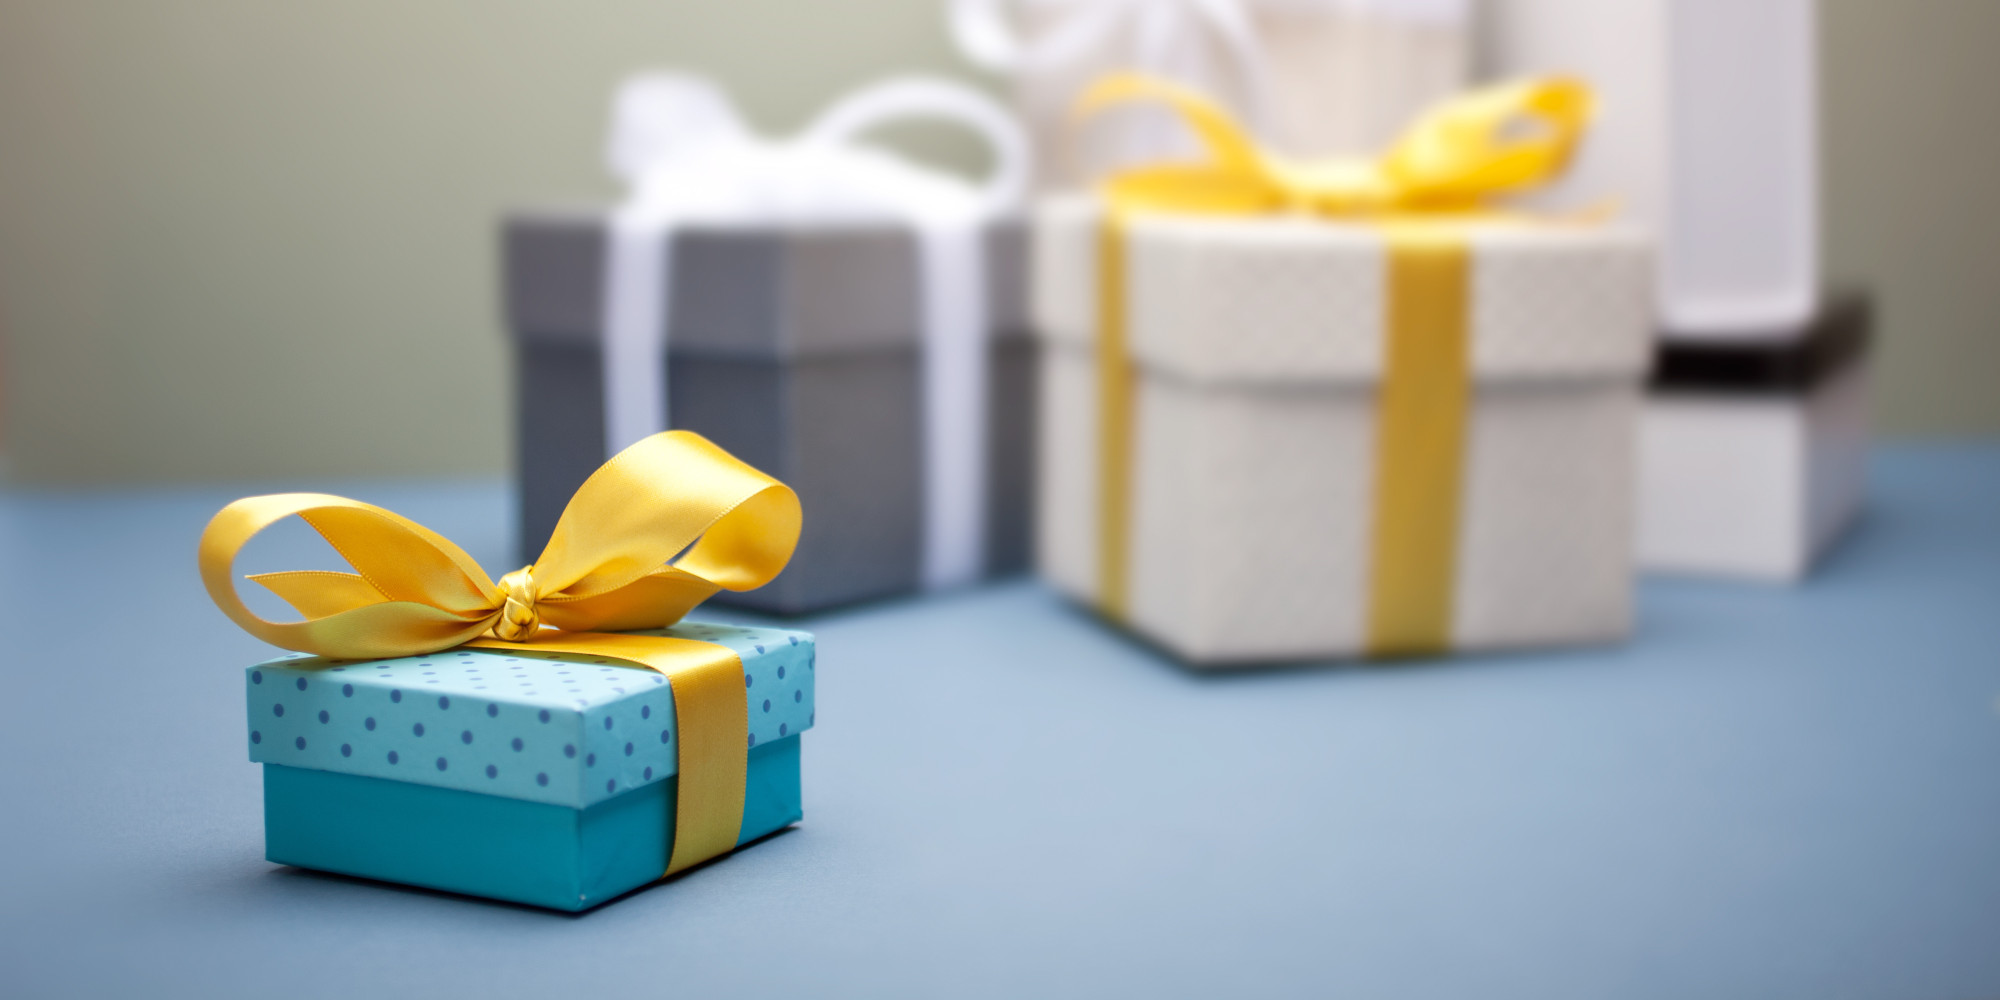 Why Are People Accepting the Corporate Gifting Trend With Open Arms?